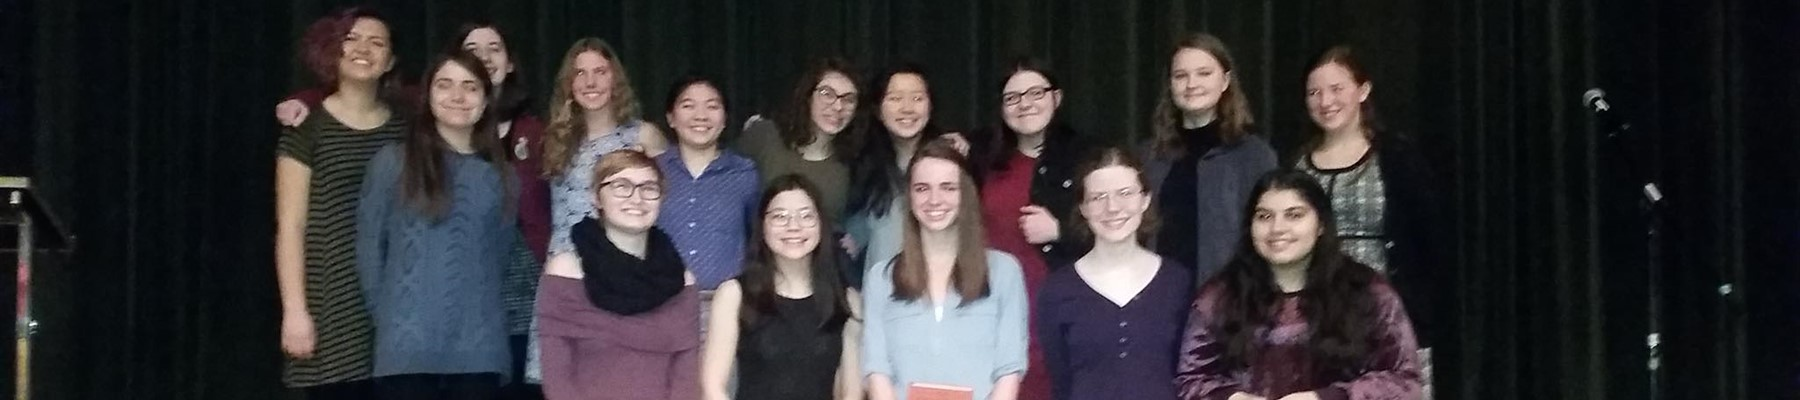 AHS Poetry Out Loud 2017 Competition Participants